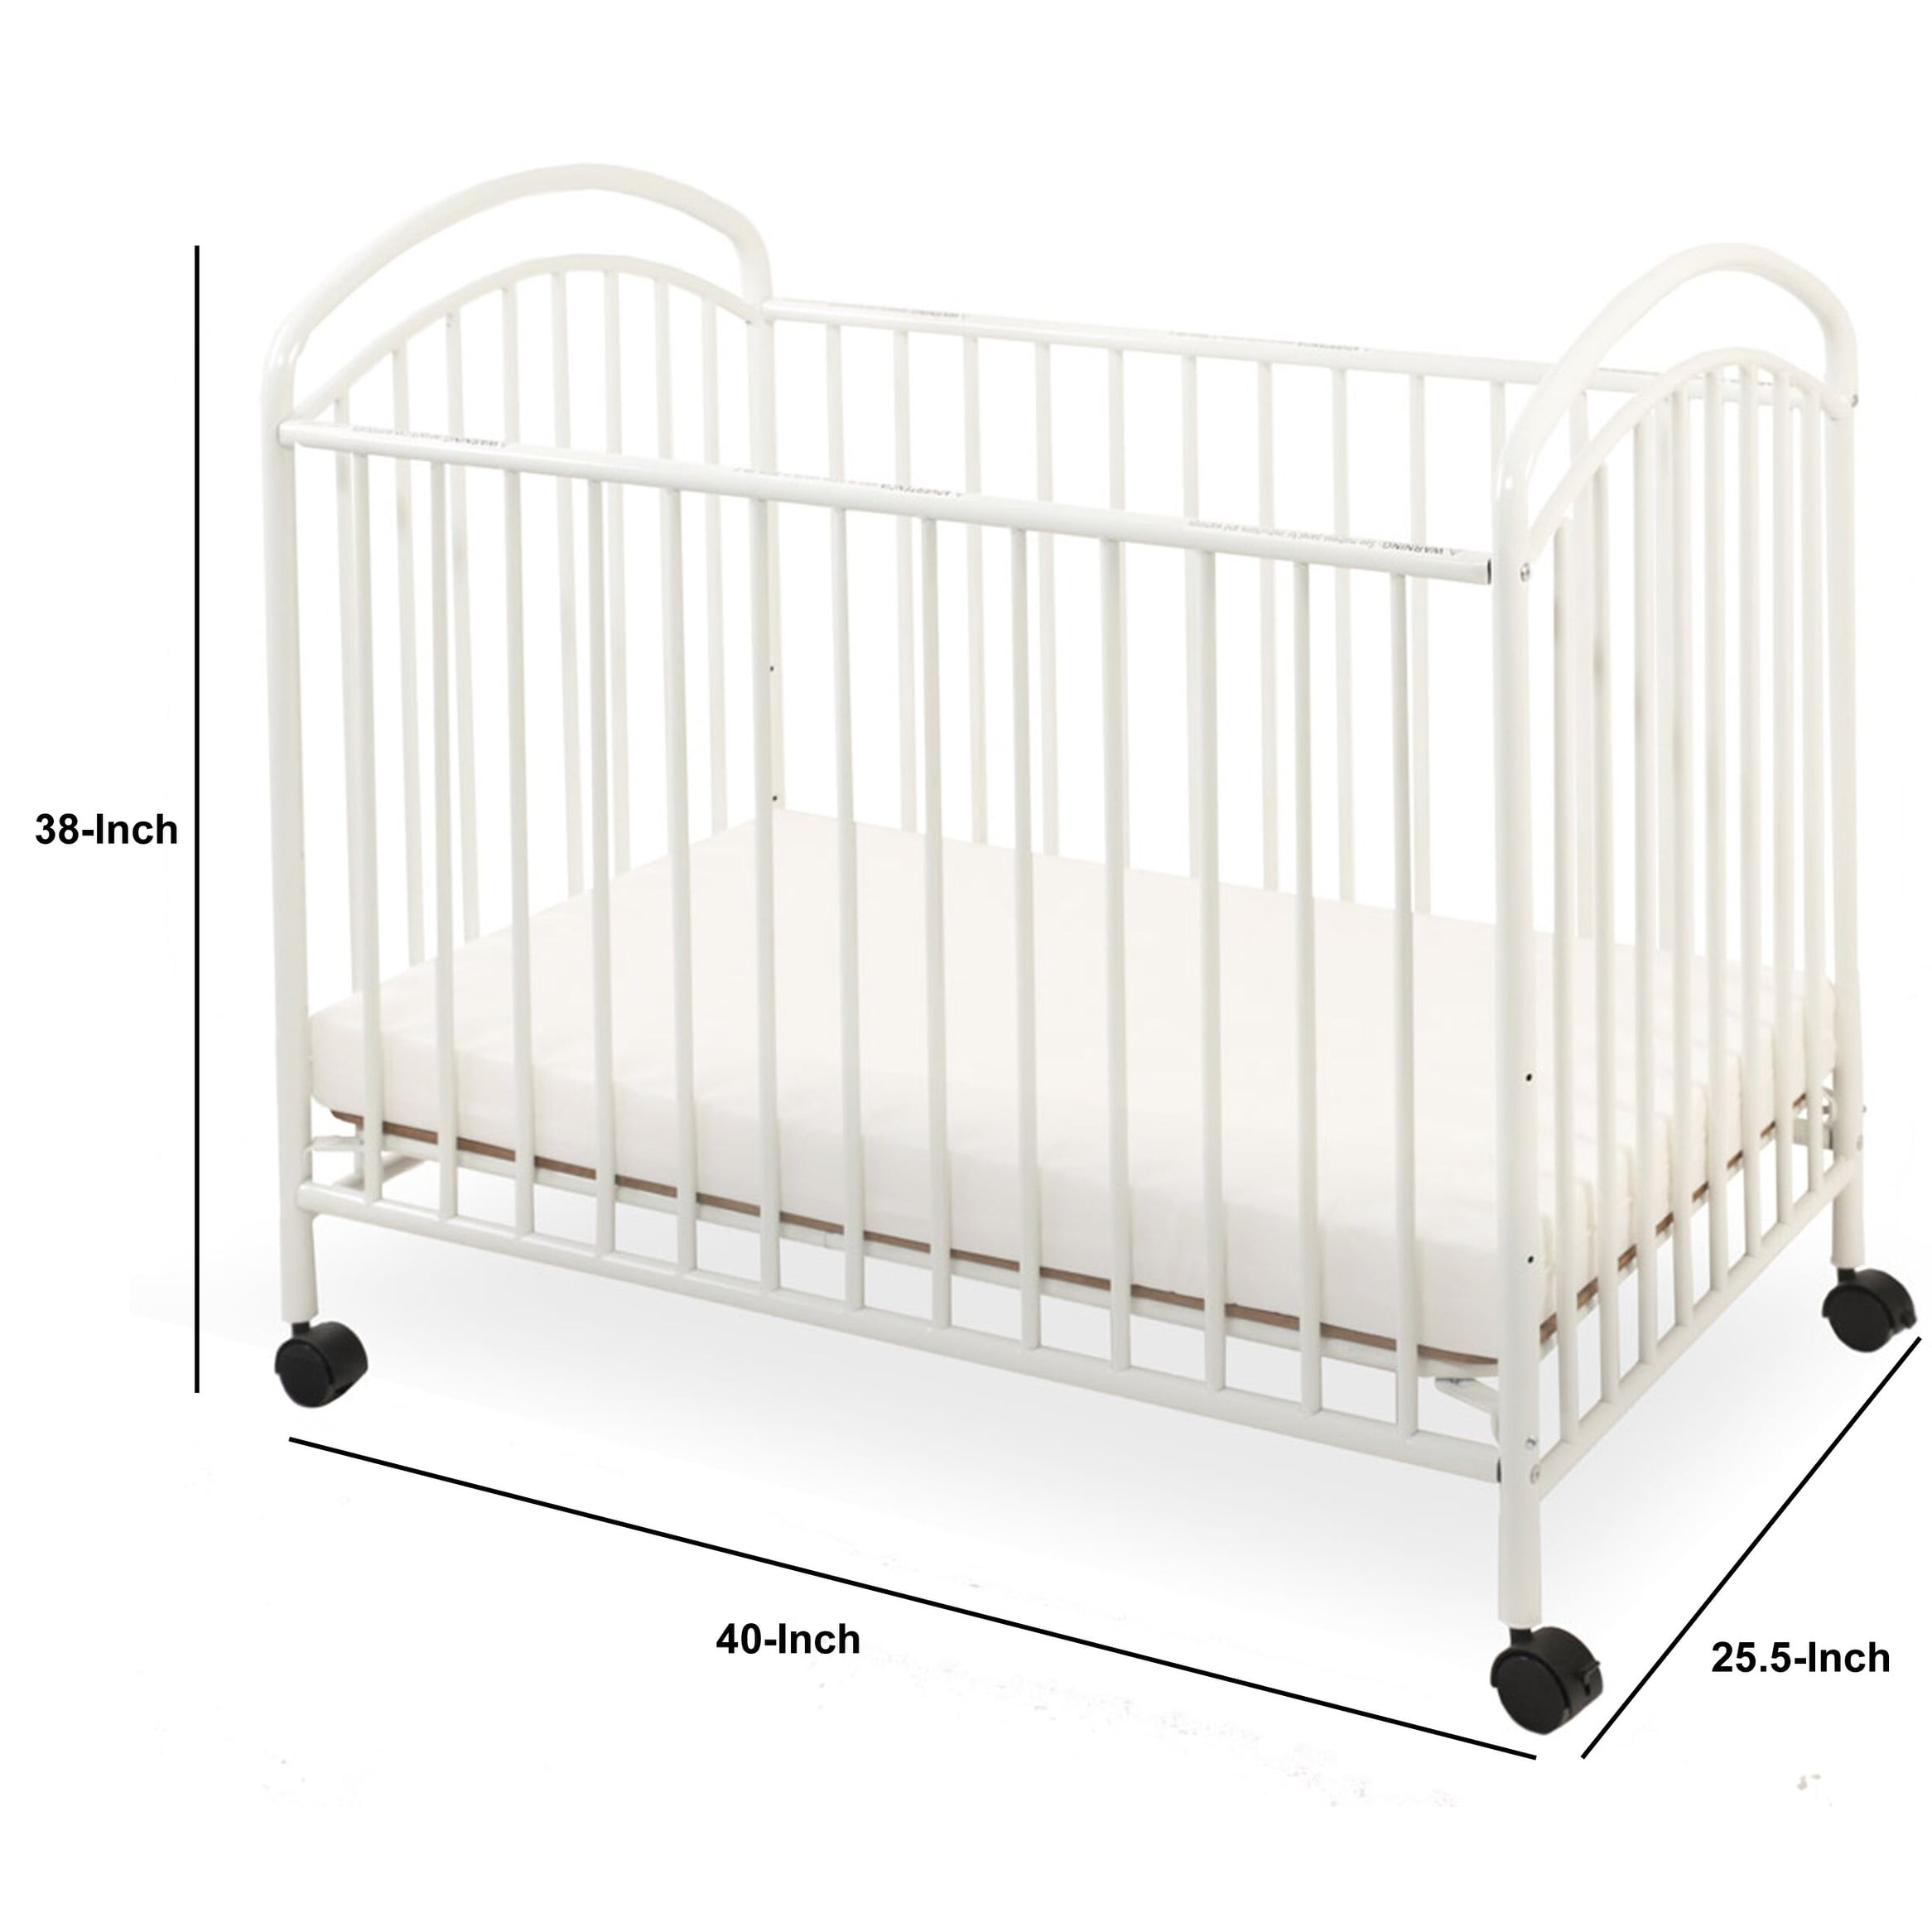 Grid Metal Crib With Adjustable Mattress Height And Casters White Overstock 30380725